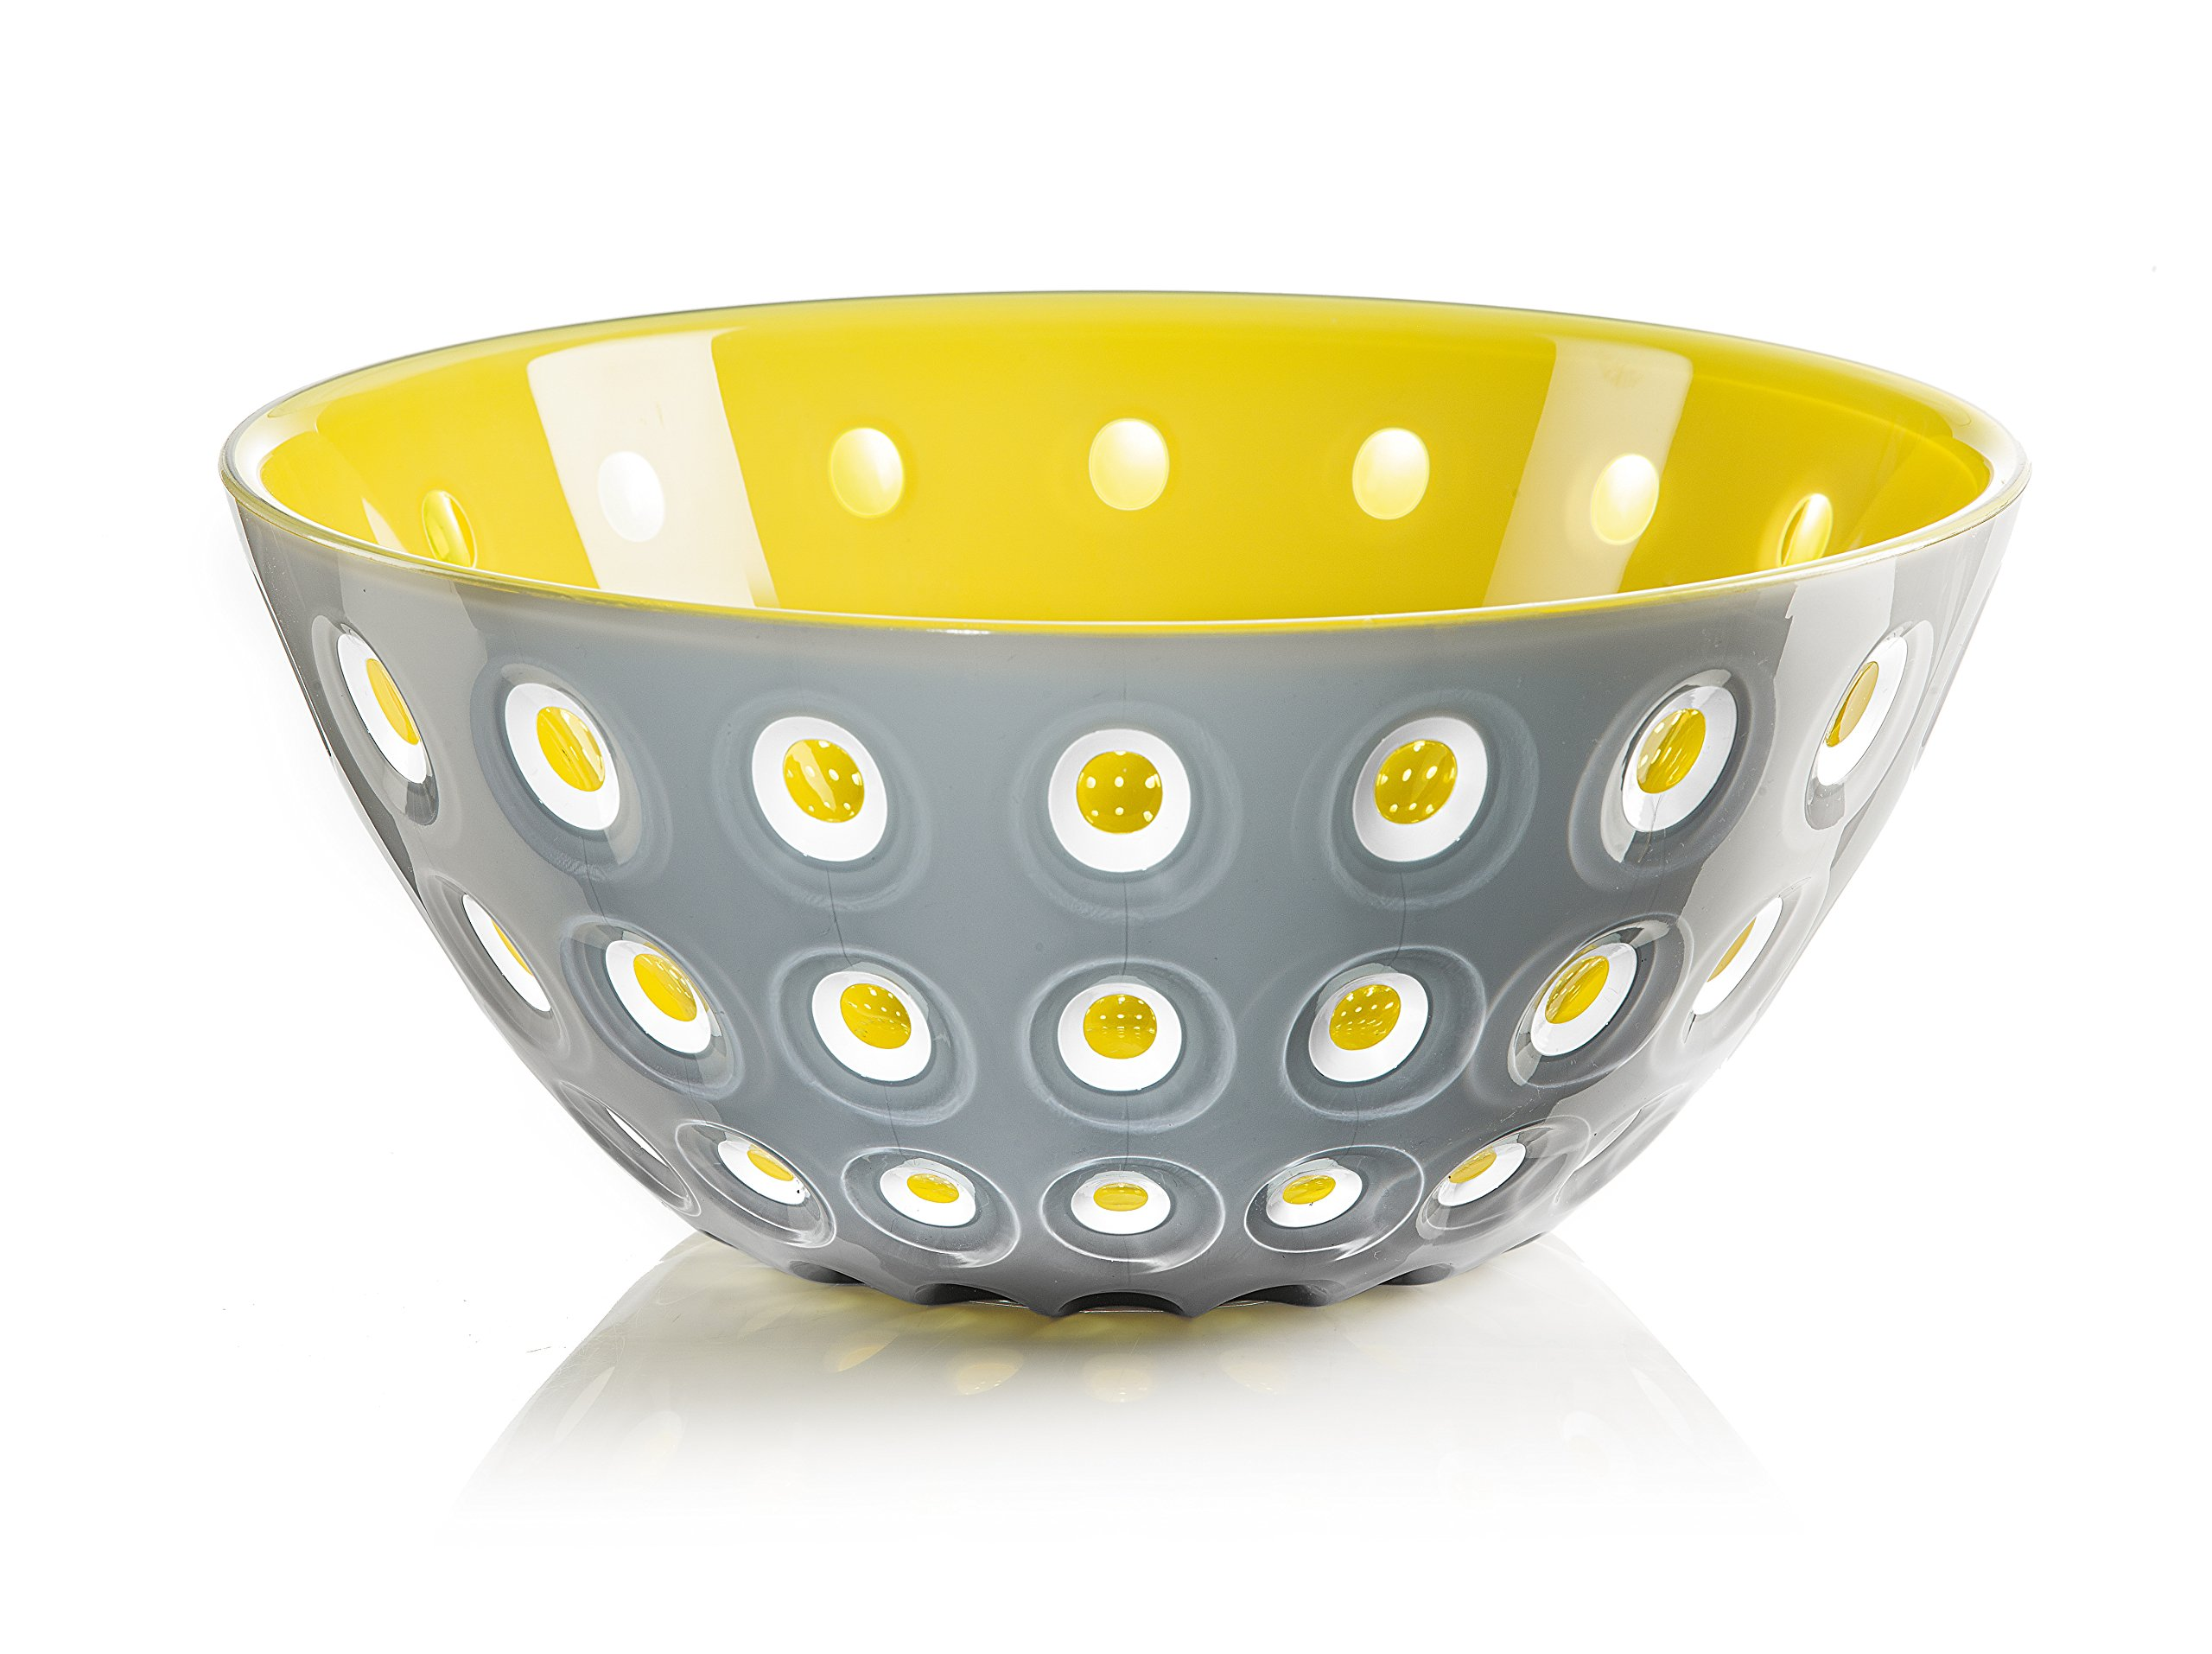 Guzzini Le Murrine Bowl, 9-3/4'' x 4-1/4'', Unique Serving Dish or Centerpiece, 91-Fluid Ounces, Made in Italy, Grey, White, Yellow